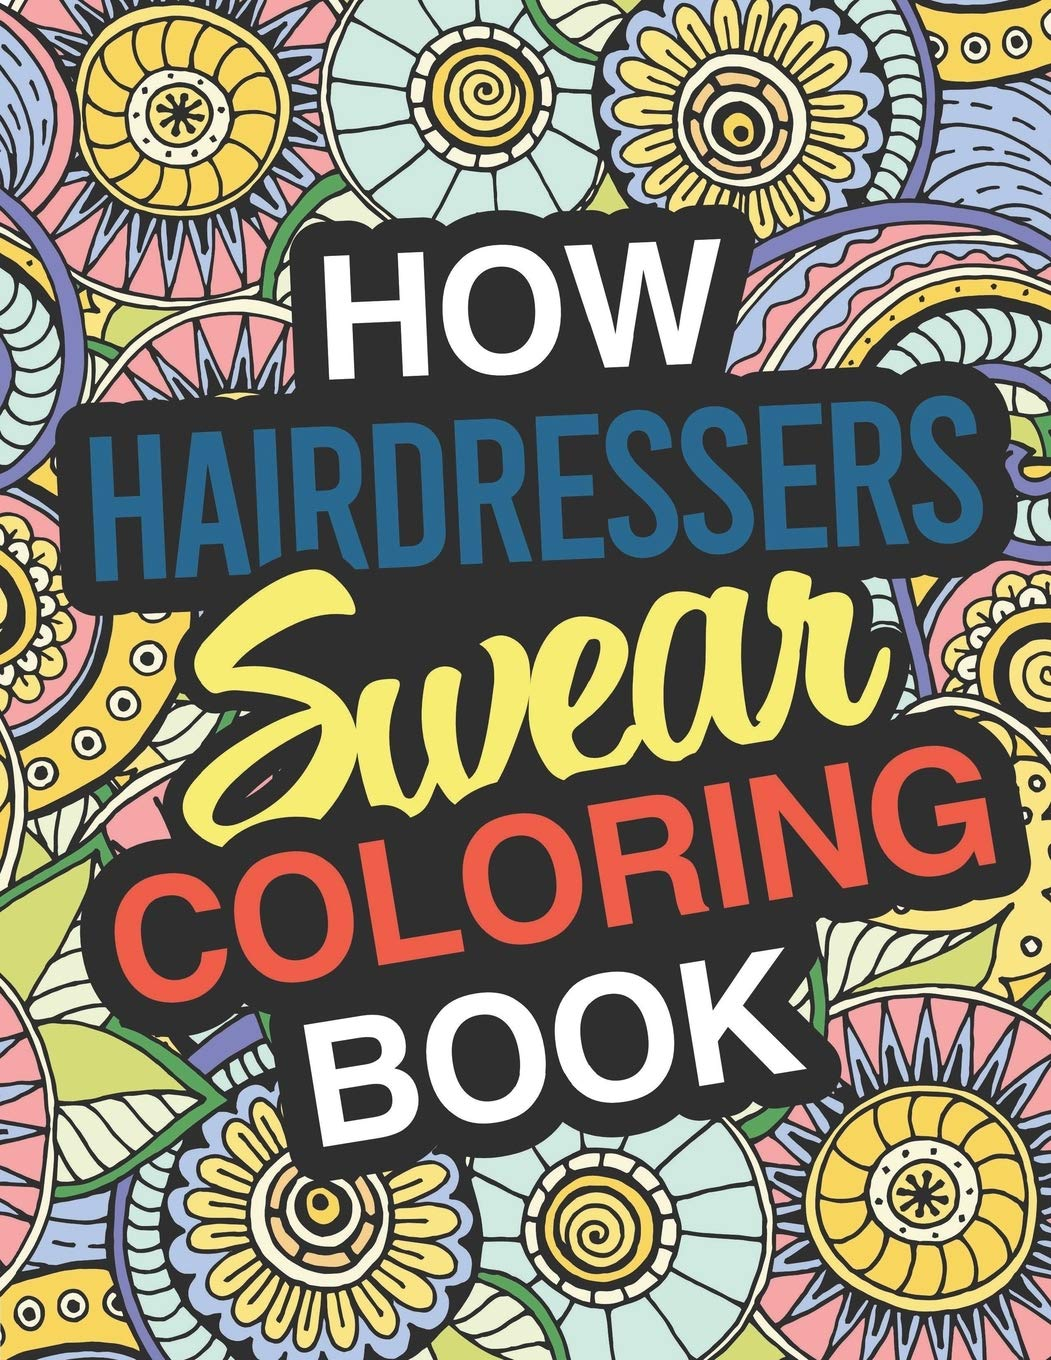 - Amazon.com: How Hairdressers Swear: A Sweary Adult Coloring Book